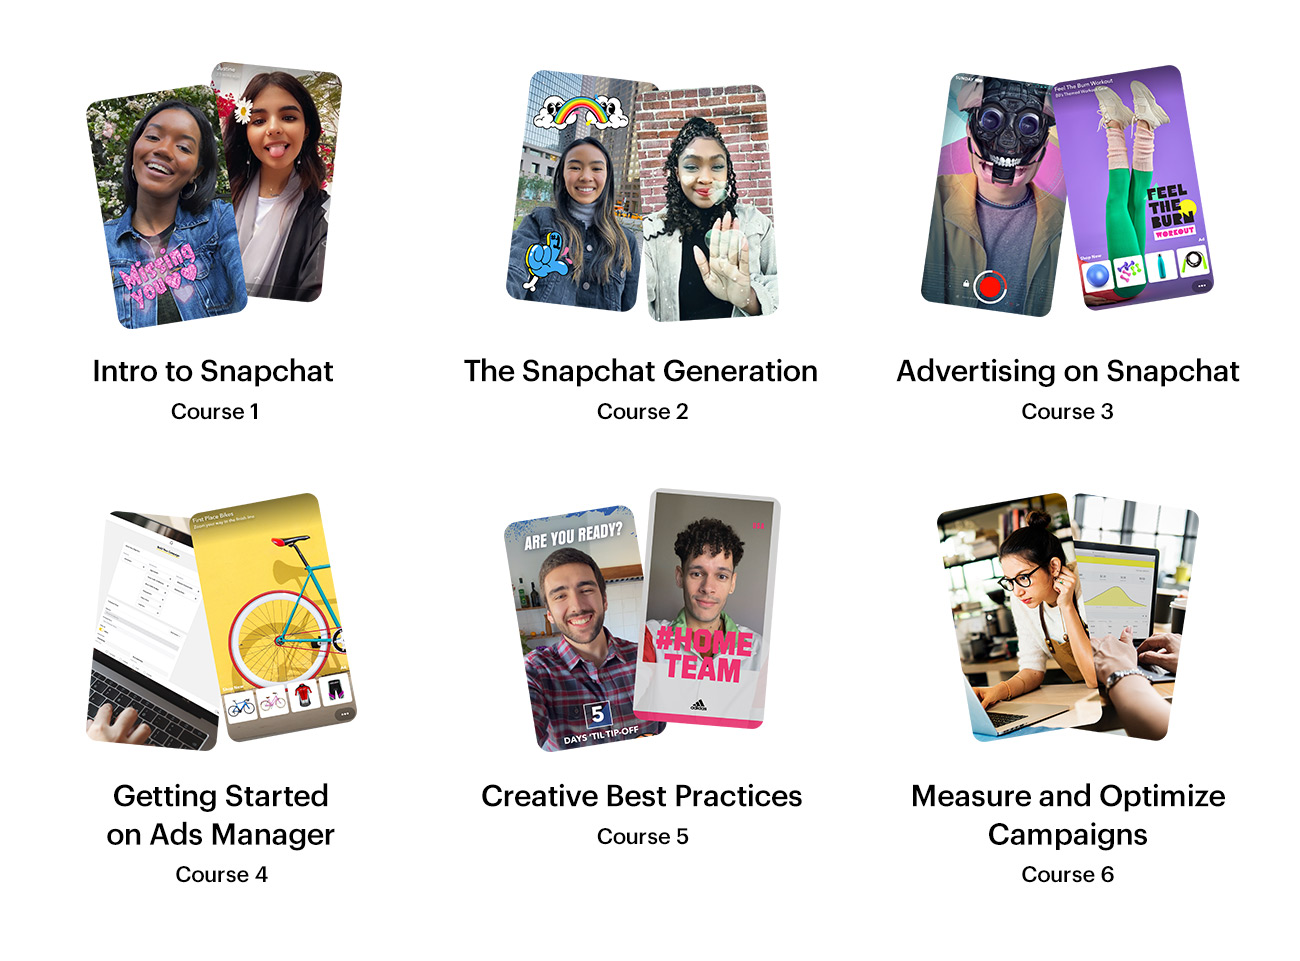 Snapchat Launches a Free Ads Certification Program Called Snap Focus